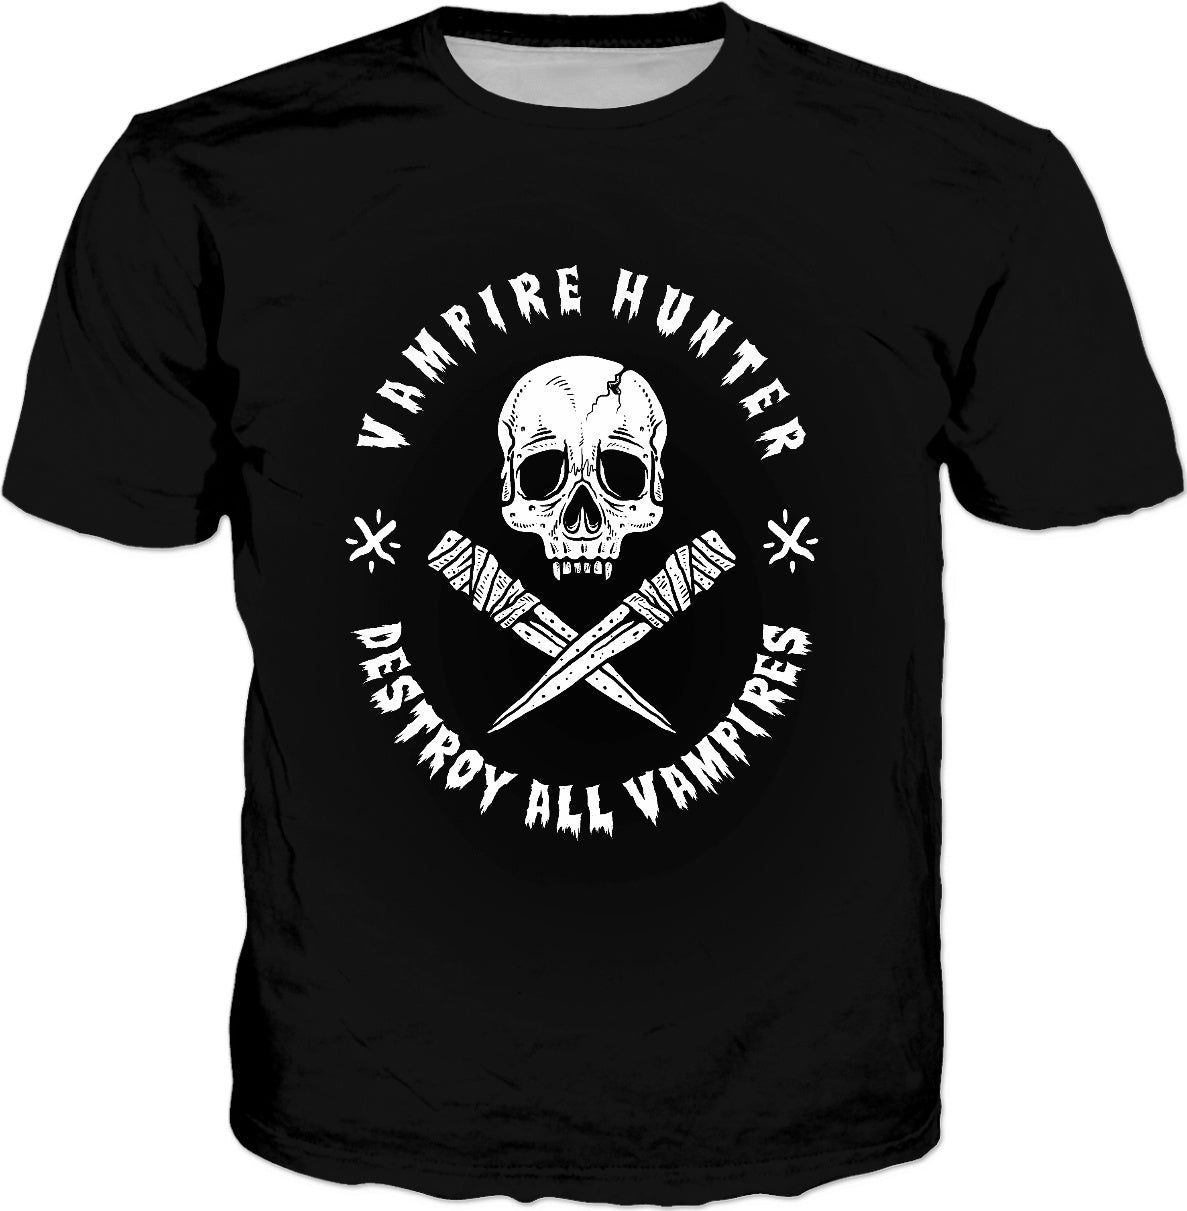 Vampire Hunter Destroy All Vampires T-Shirt - Halloween Tee - The Lazy Raven